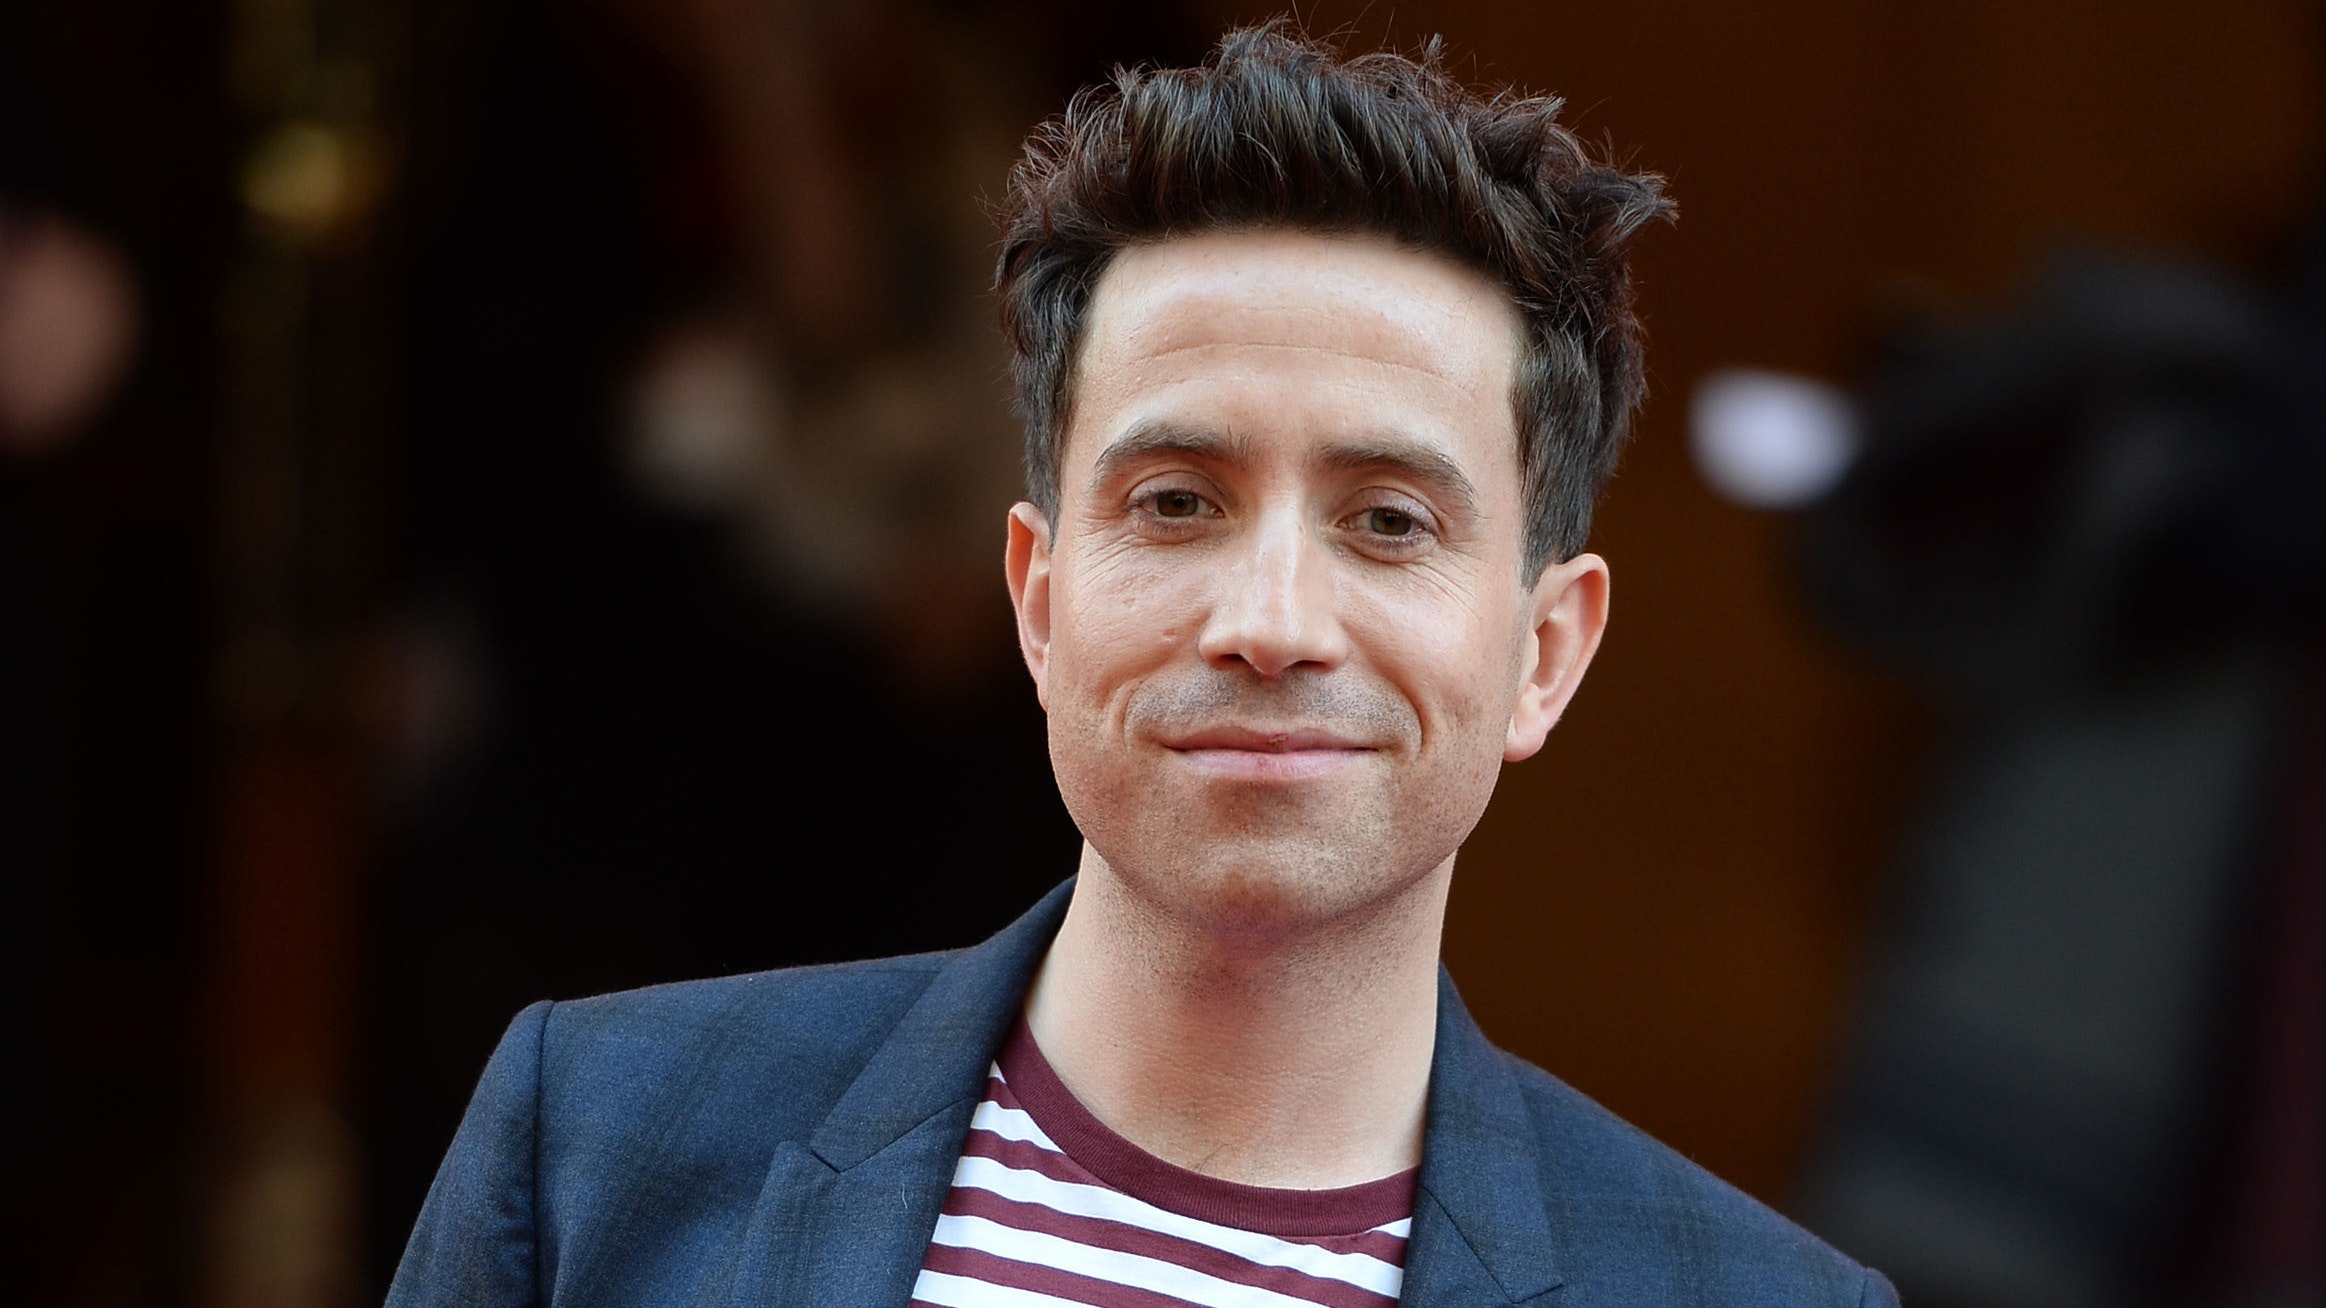 'Really tired' Nick Grimshaw to leave BBC Radio 1 Breakfast Show